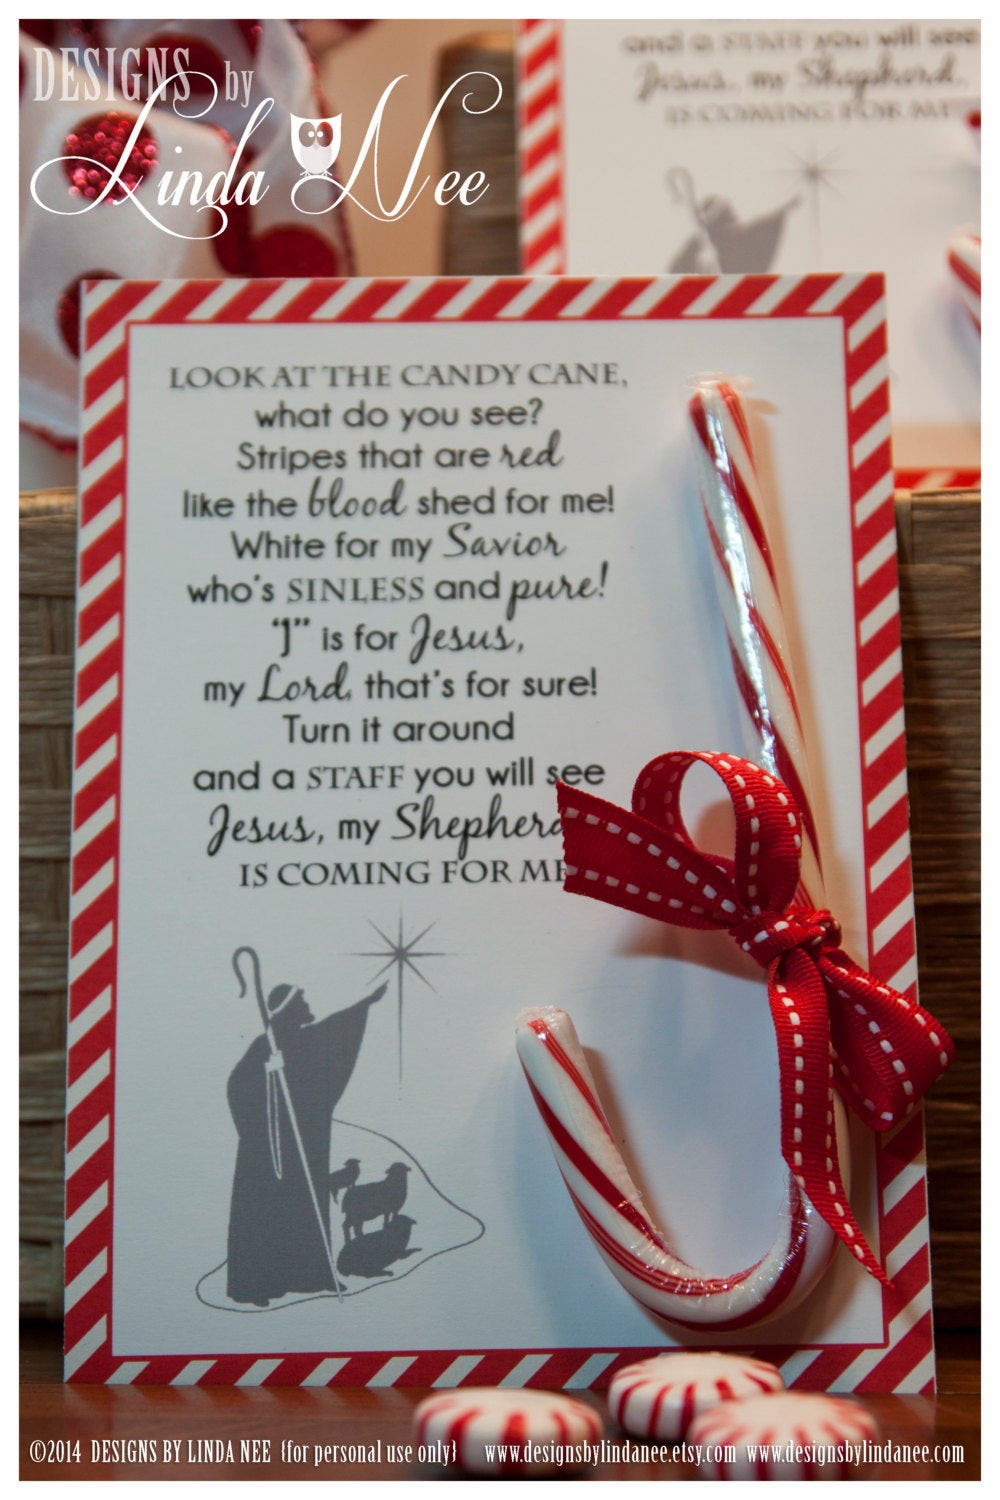 Candy Cane Christmas Poem  Legend of the Candy Cane Card for Witnessing at Christmas